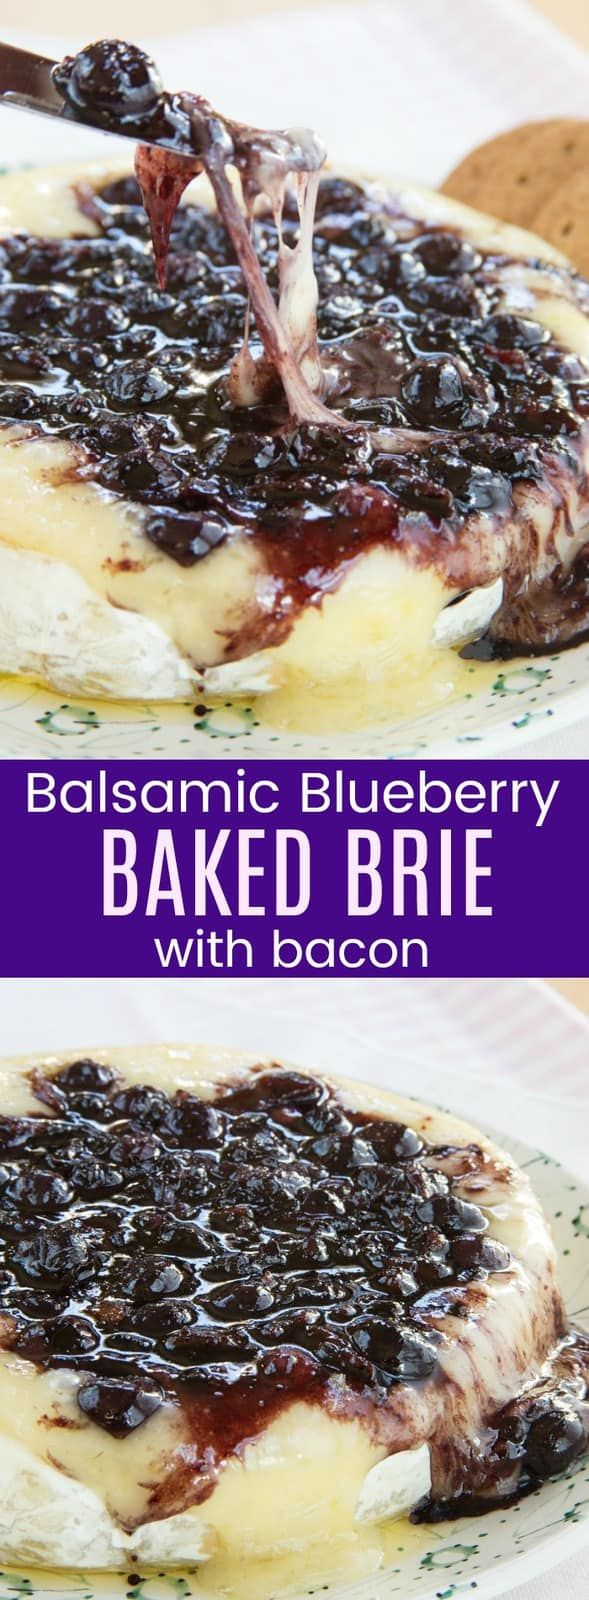 Balsamic Blueberry Baked Brie Recipe with Bacon - so much ooey gooey goodness in this easy sweet an